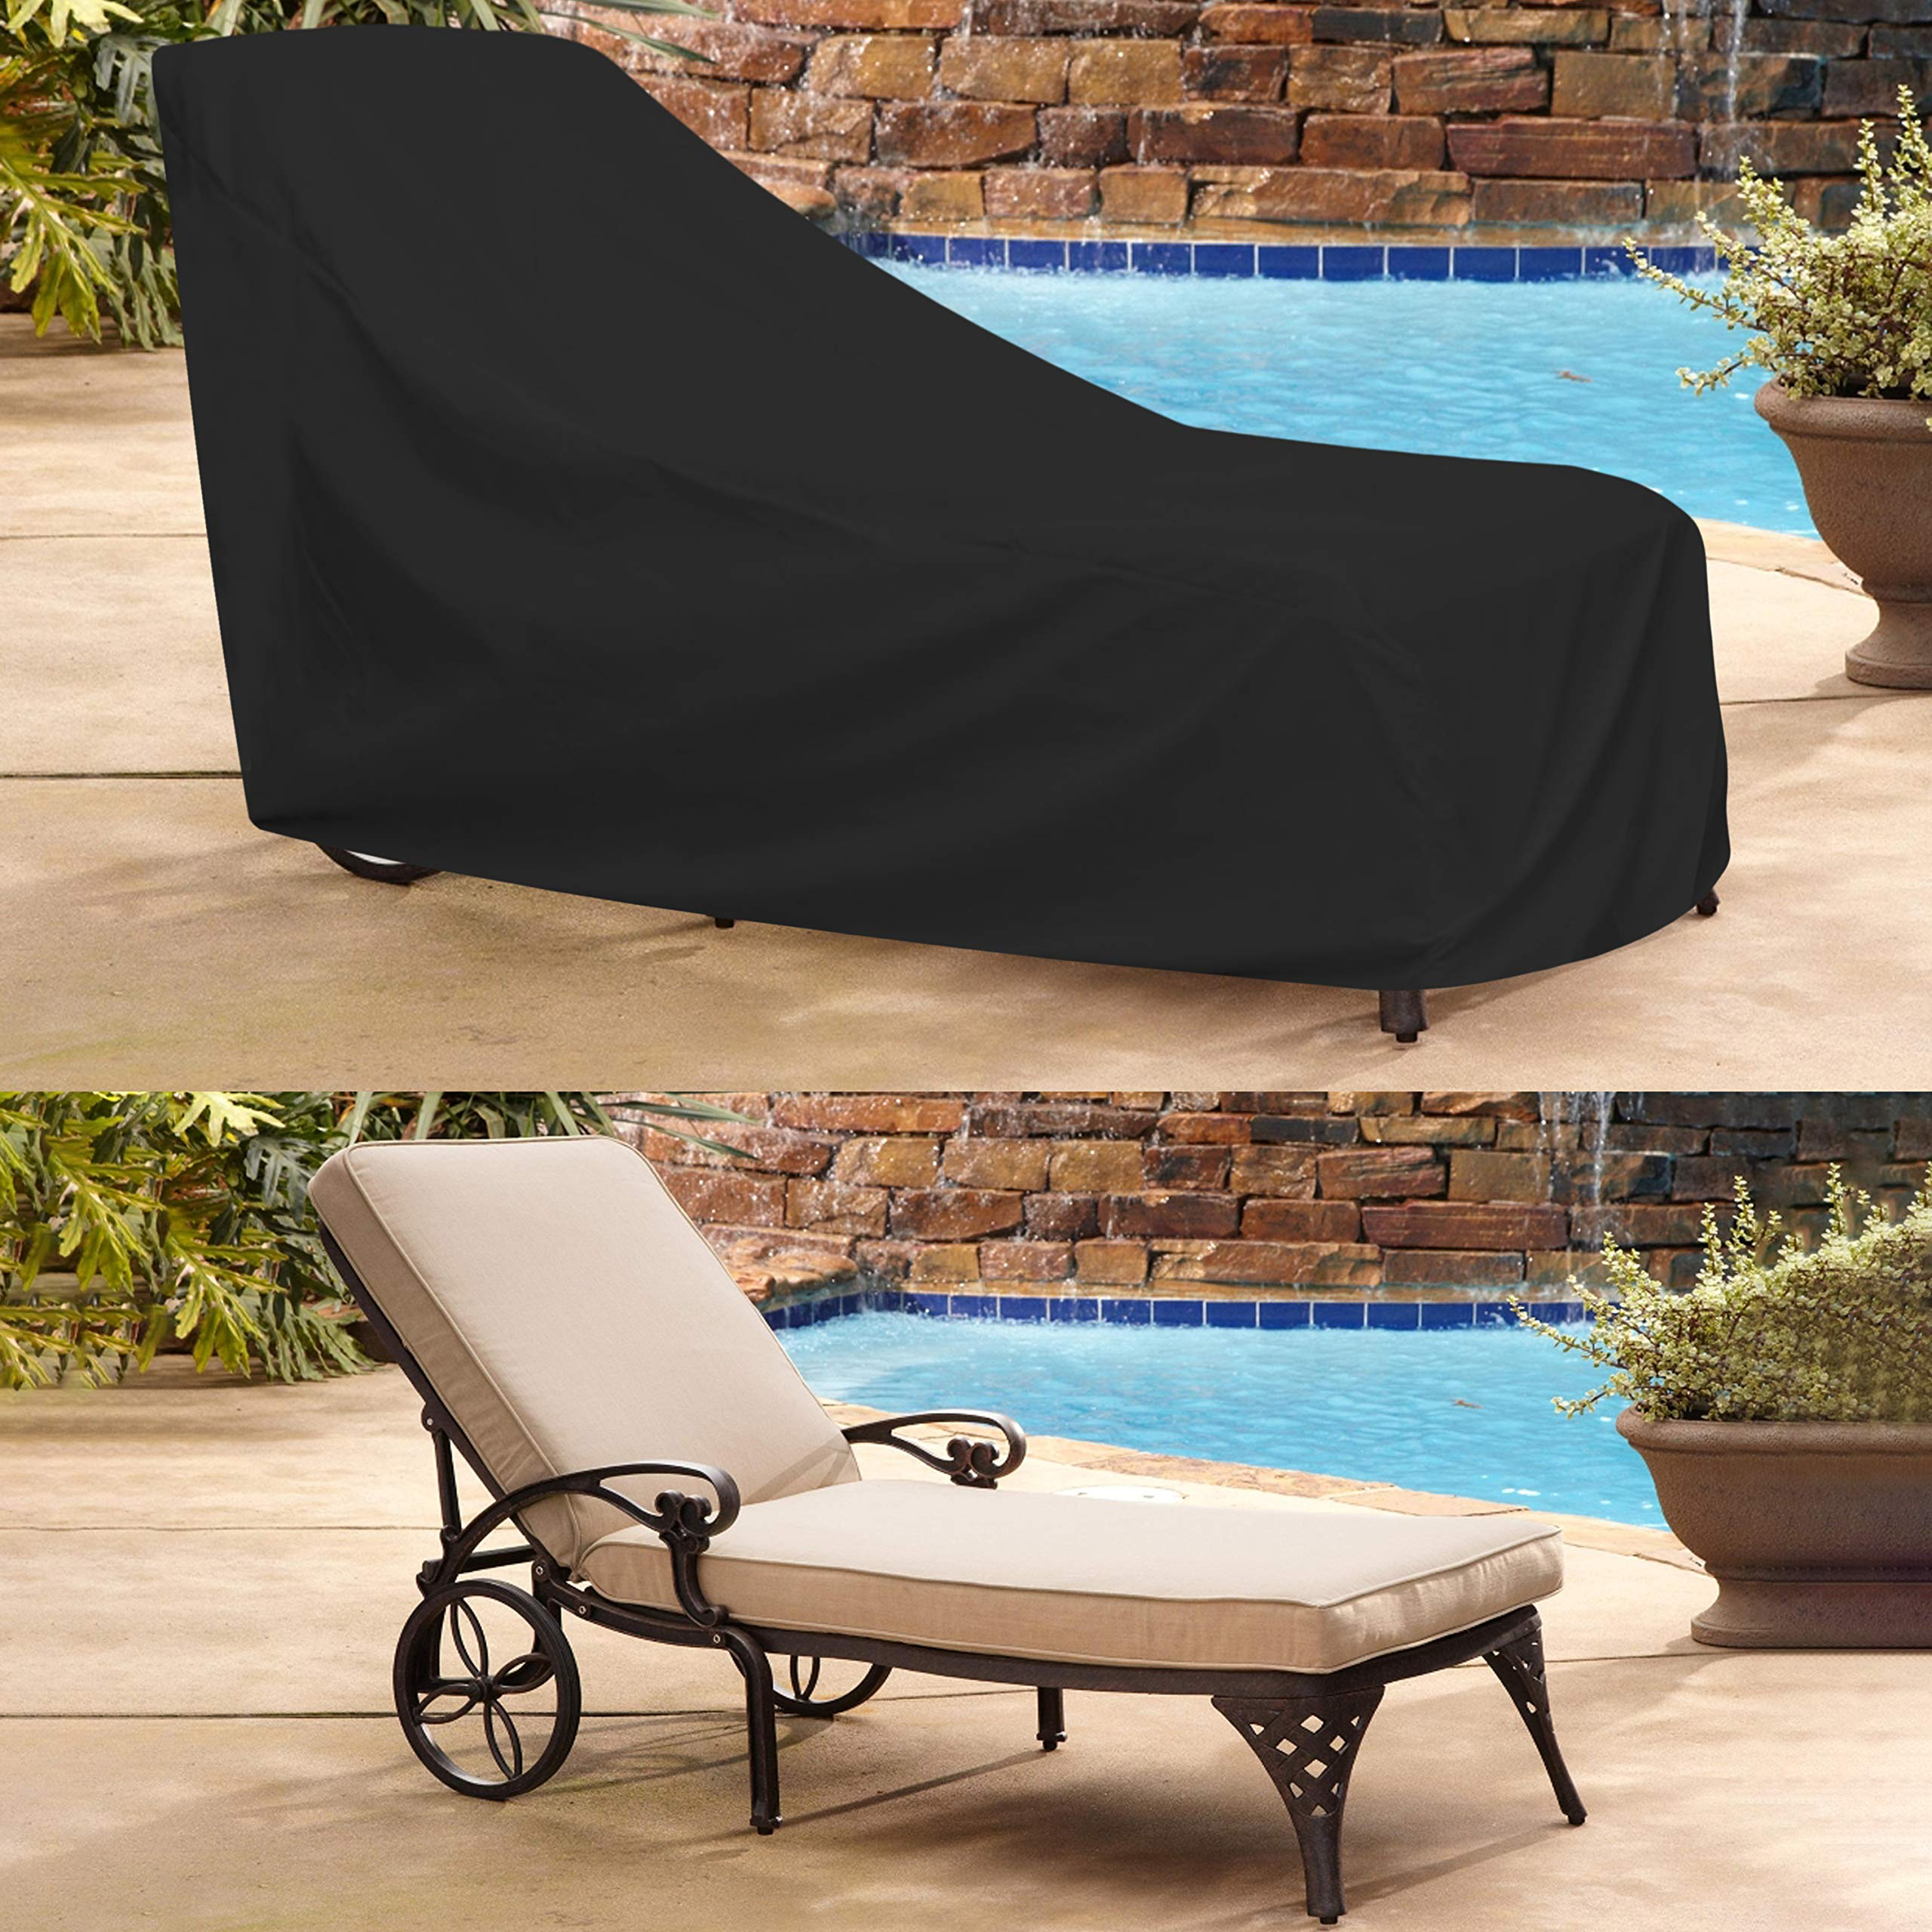 COVERS & ALL Chaise Lounge Cover 12 Oz Waterproof - 100% UV & Weather Resistant Outdoor Chaise Cover PVC Coated with Air Pockets and Drawstring for Snug Fit (86W x 36D x 32H, Black) by COVERS & ALL (Image #7)